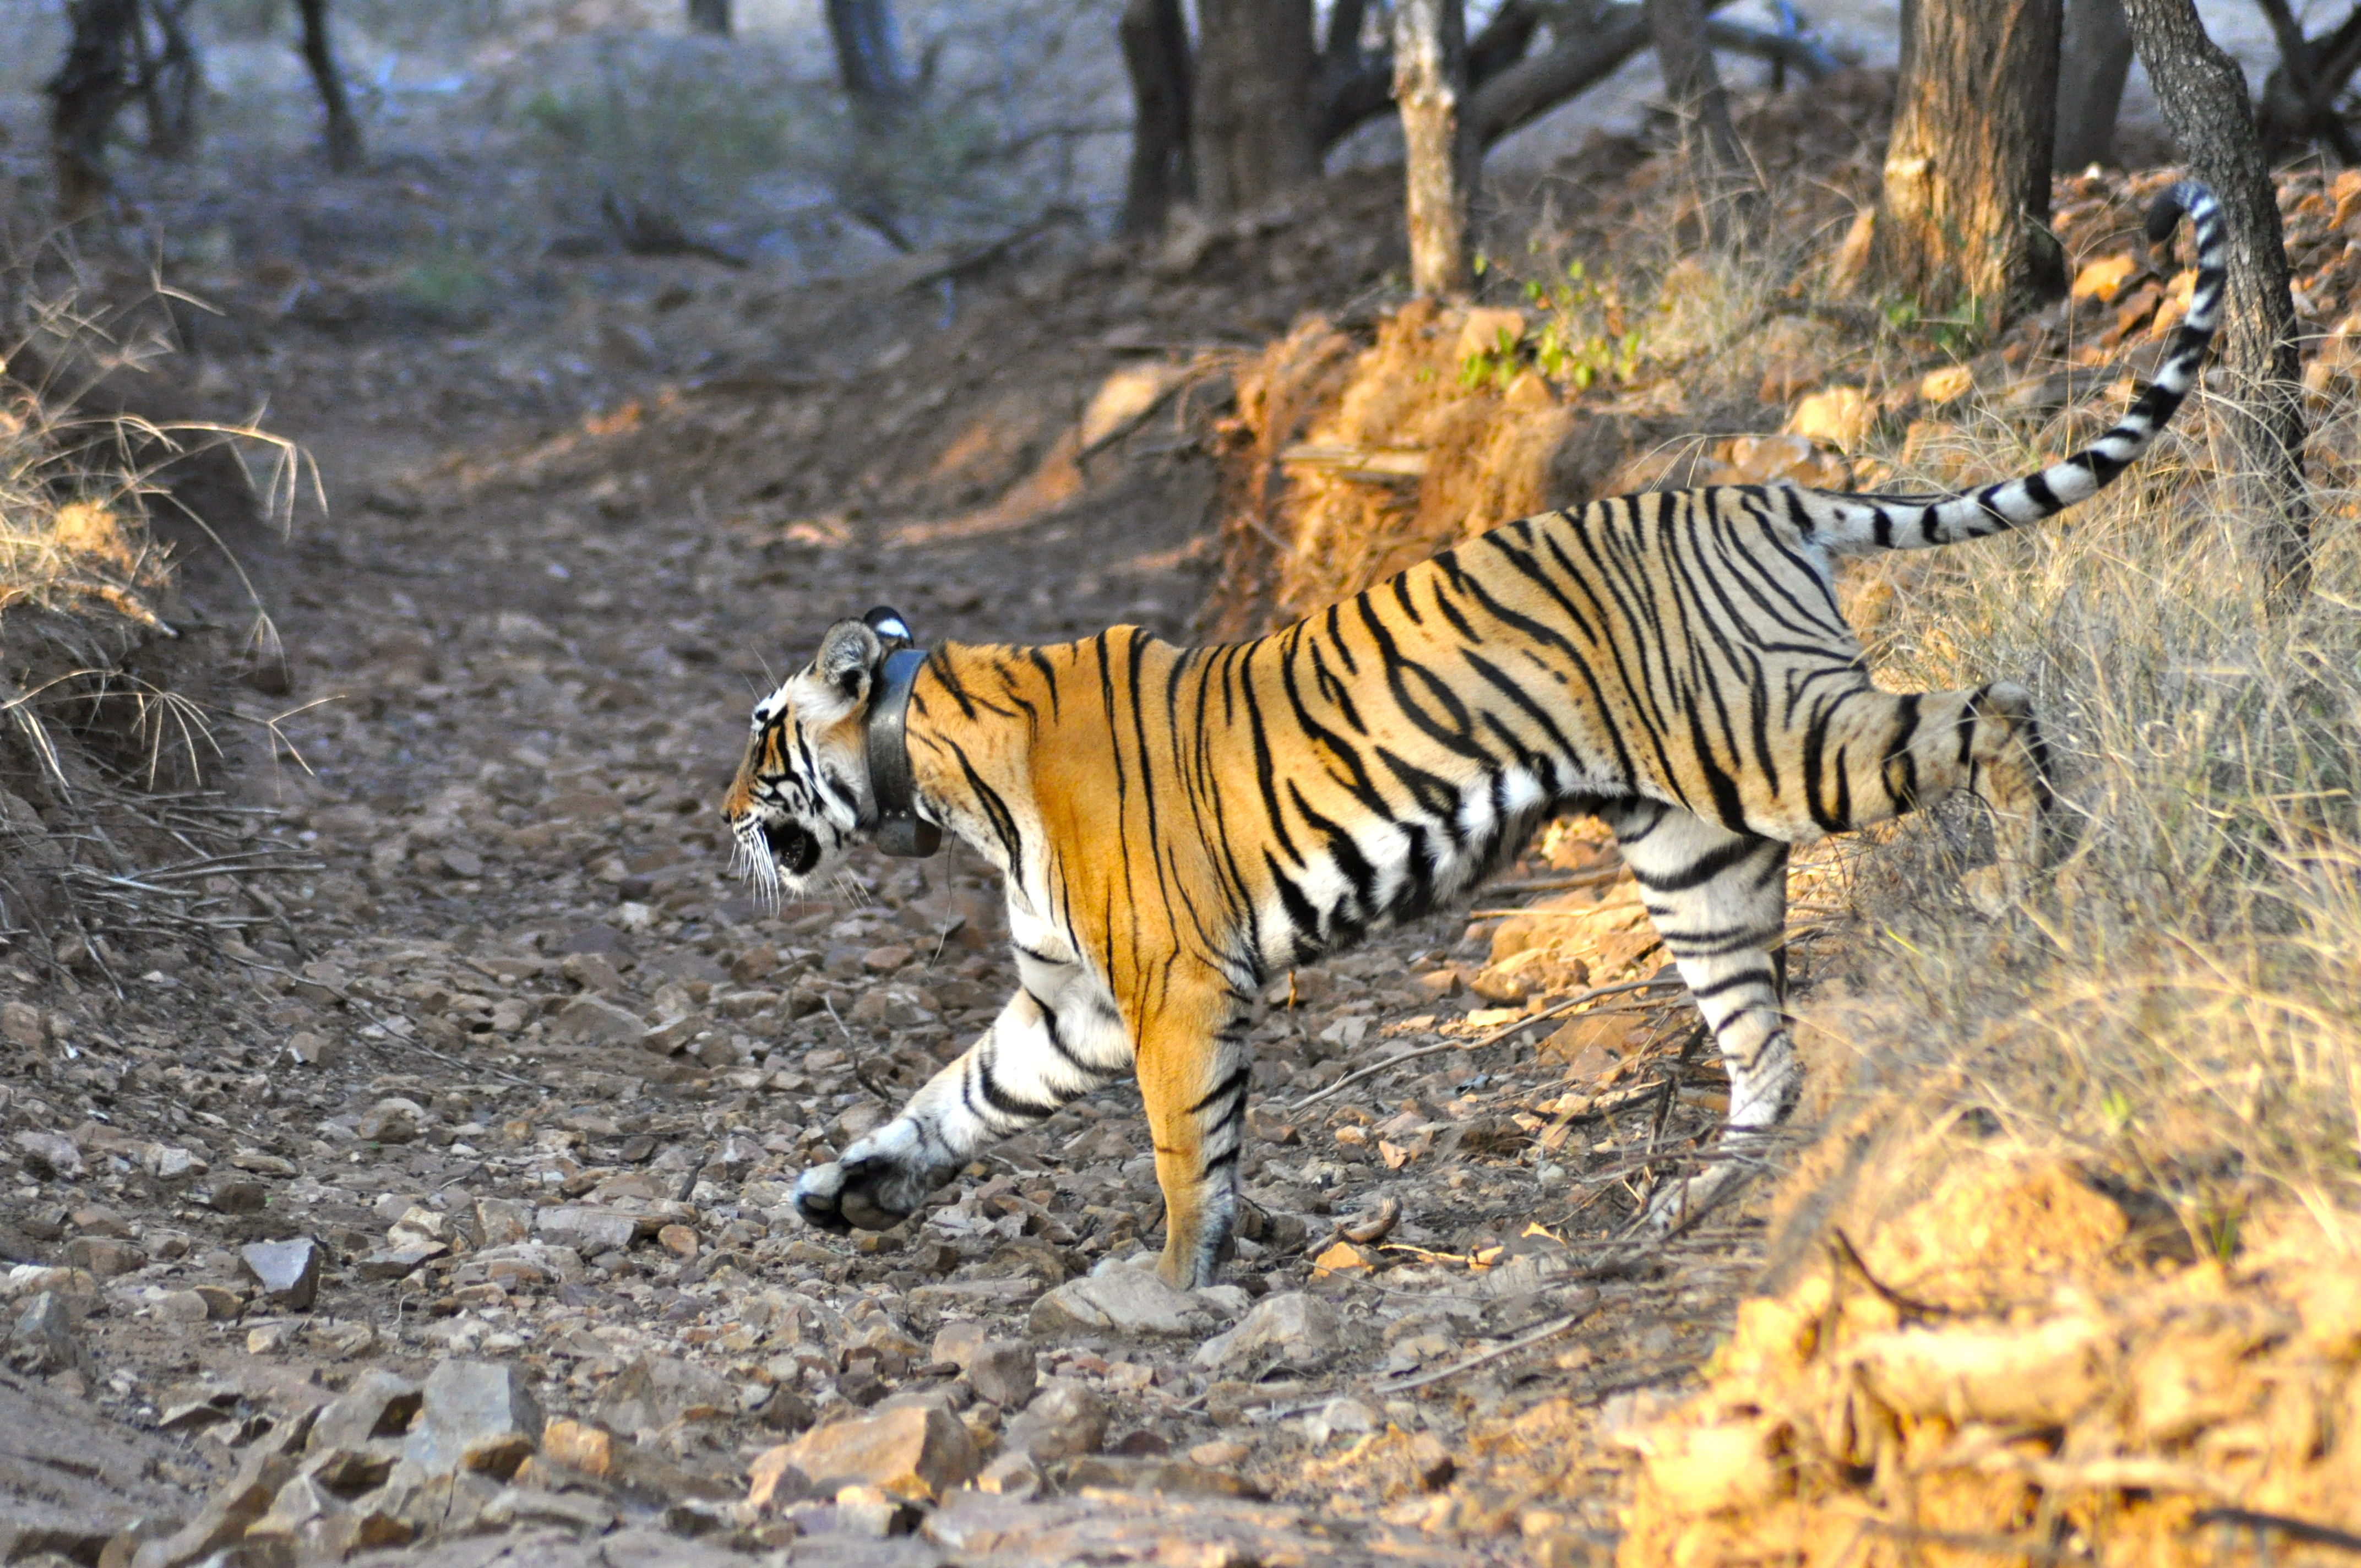 royal bengal tigers Download royal bengal tiger free images from stockfreeimages many free stock images added daily.